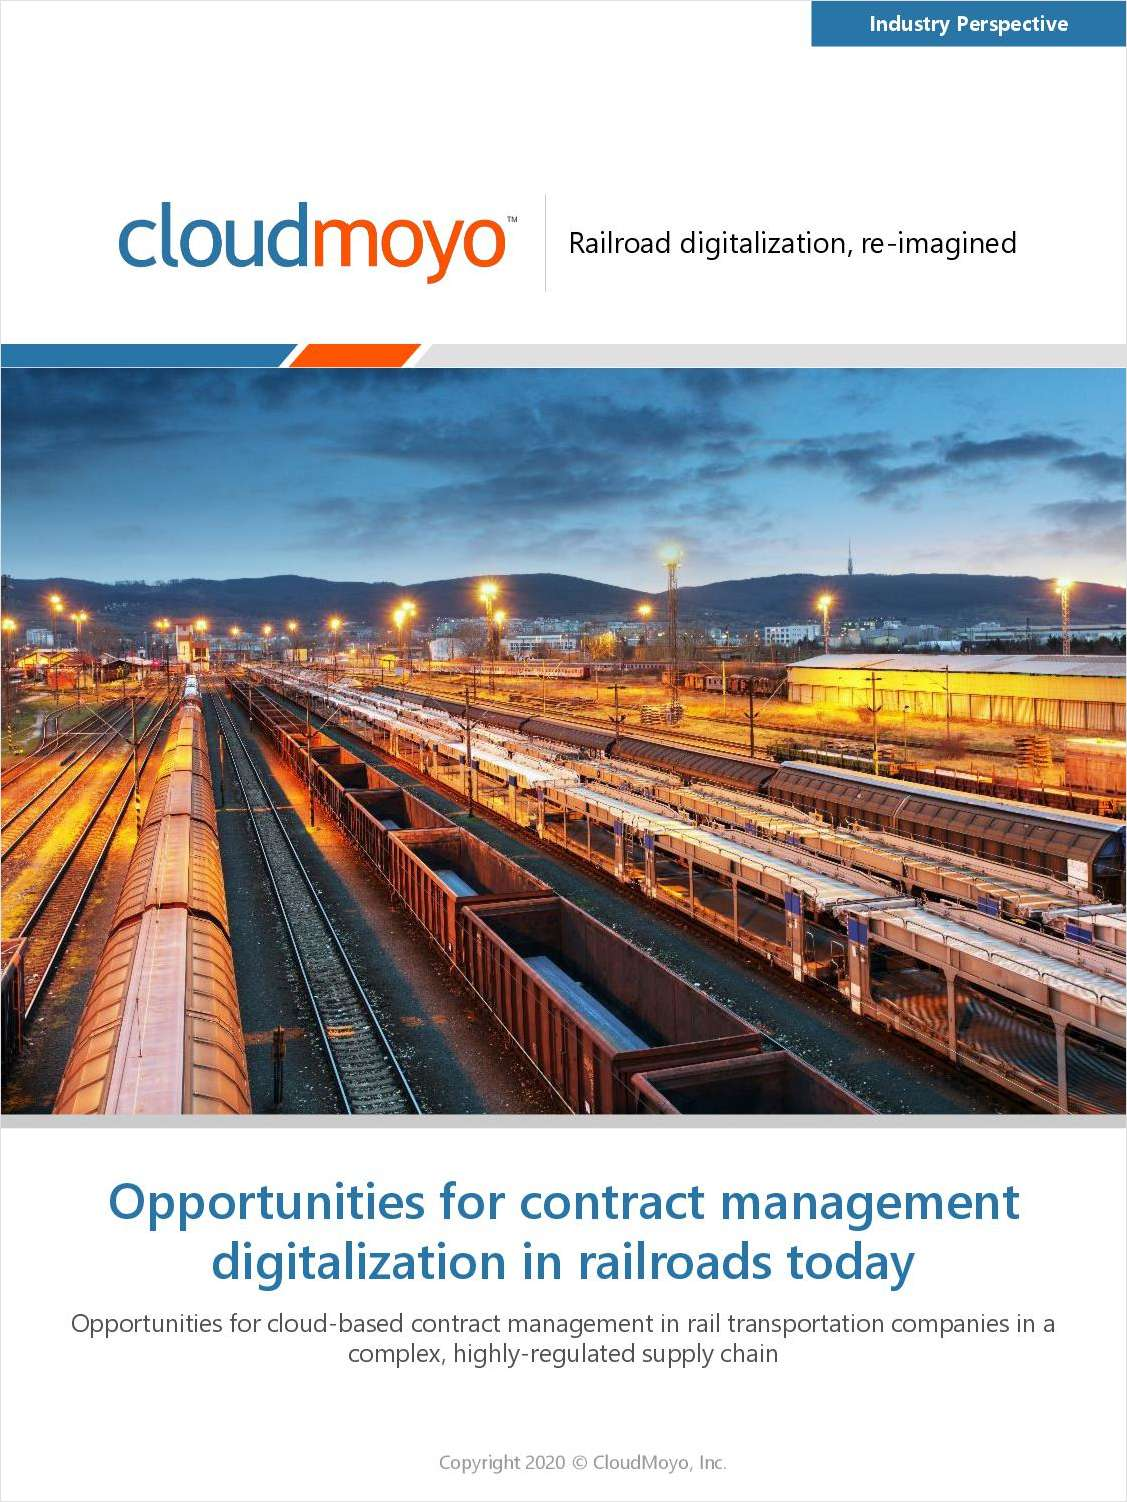 Opportunities for Contract Management Digitalization in Railroads Today